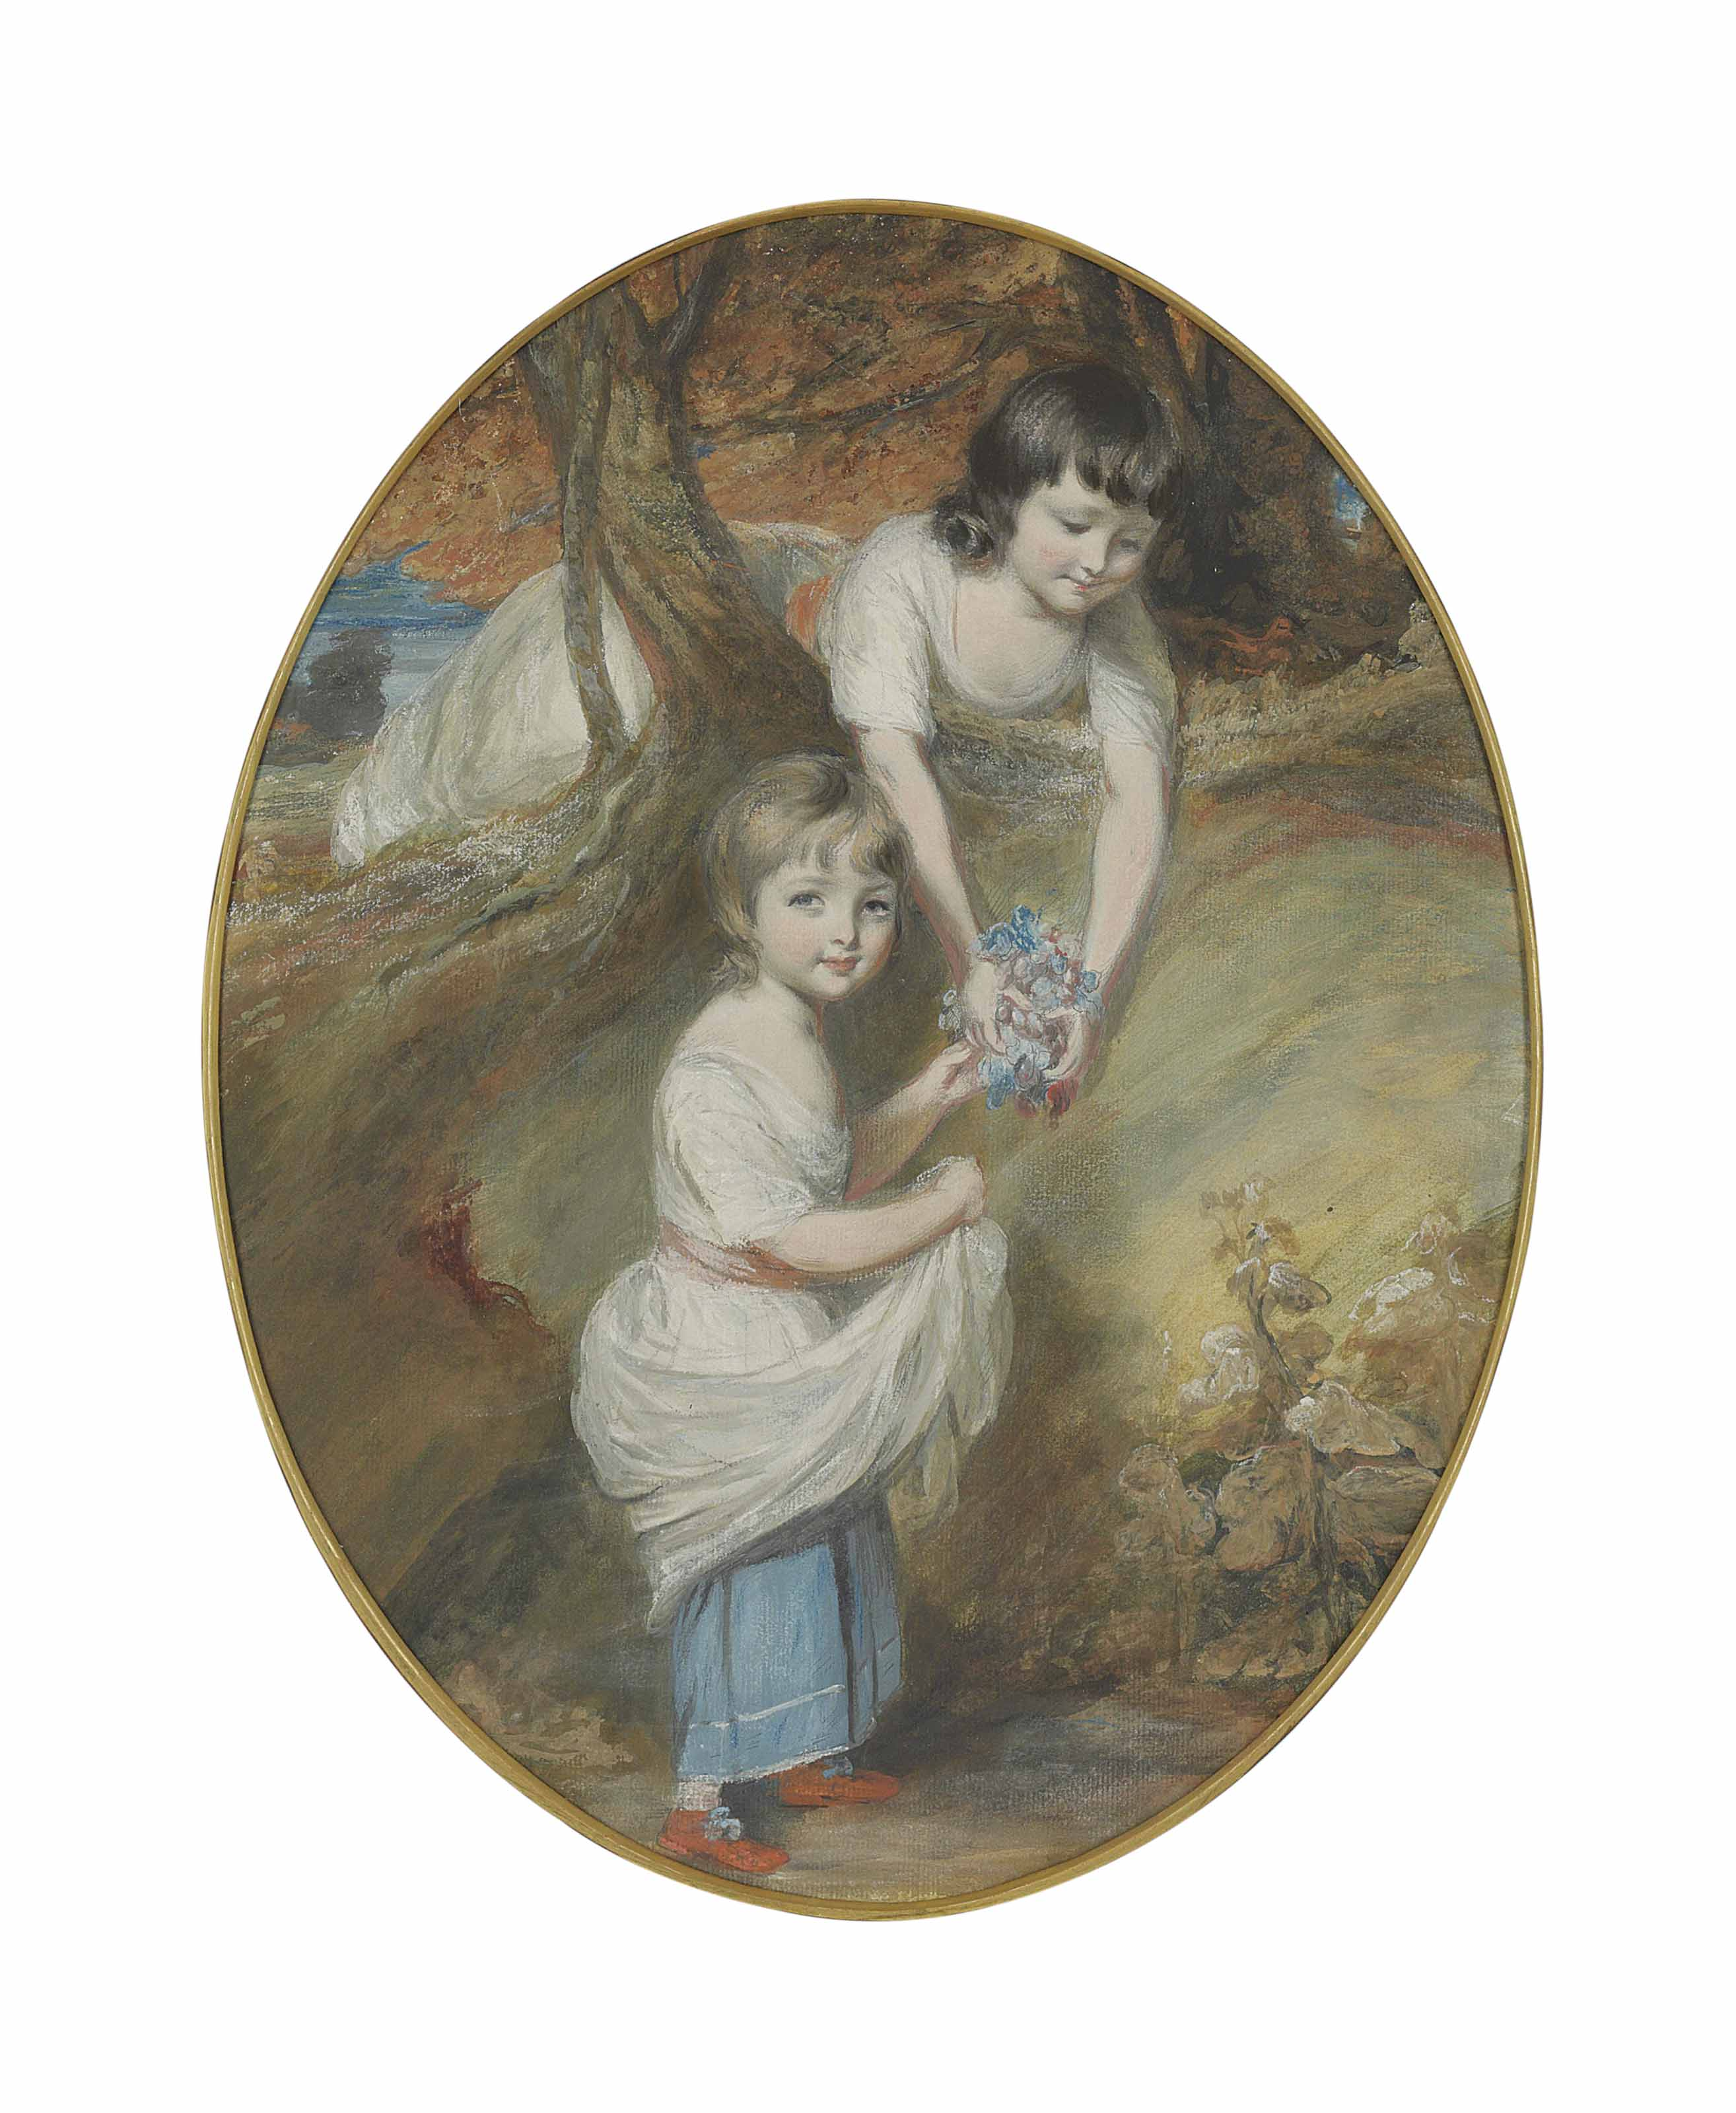 Double portrait of two young girls, traditionally identified as Harriet Fortescue and her sister April, gathering flowers